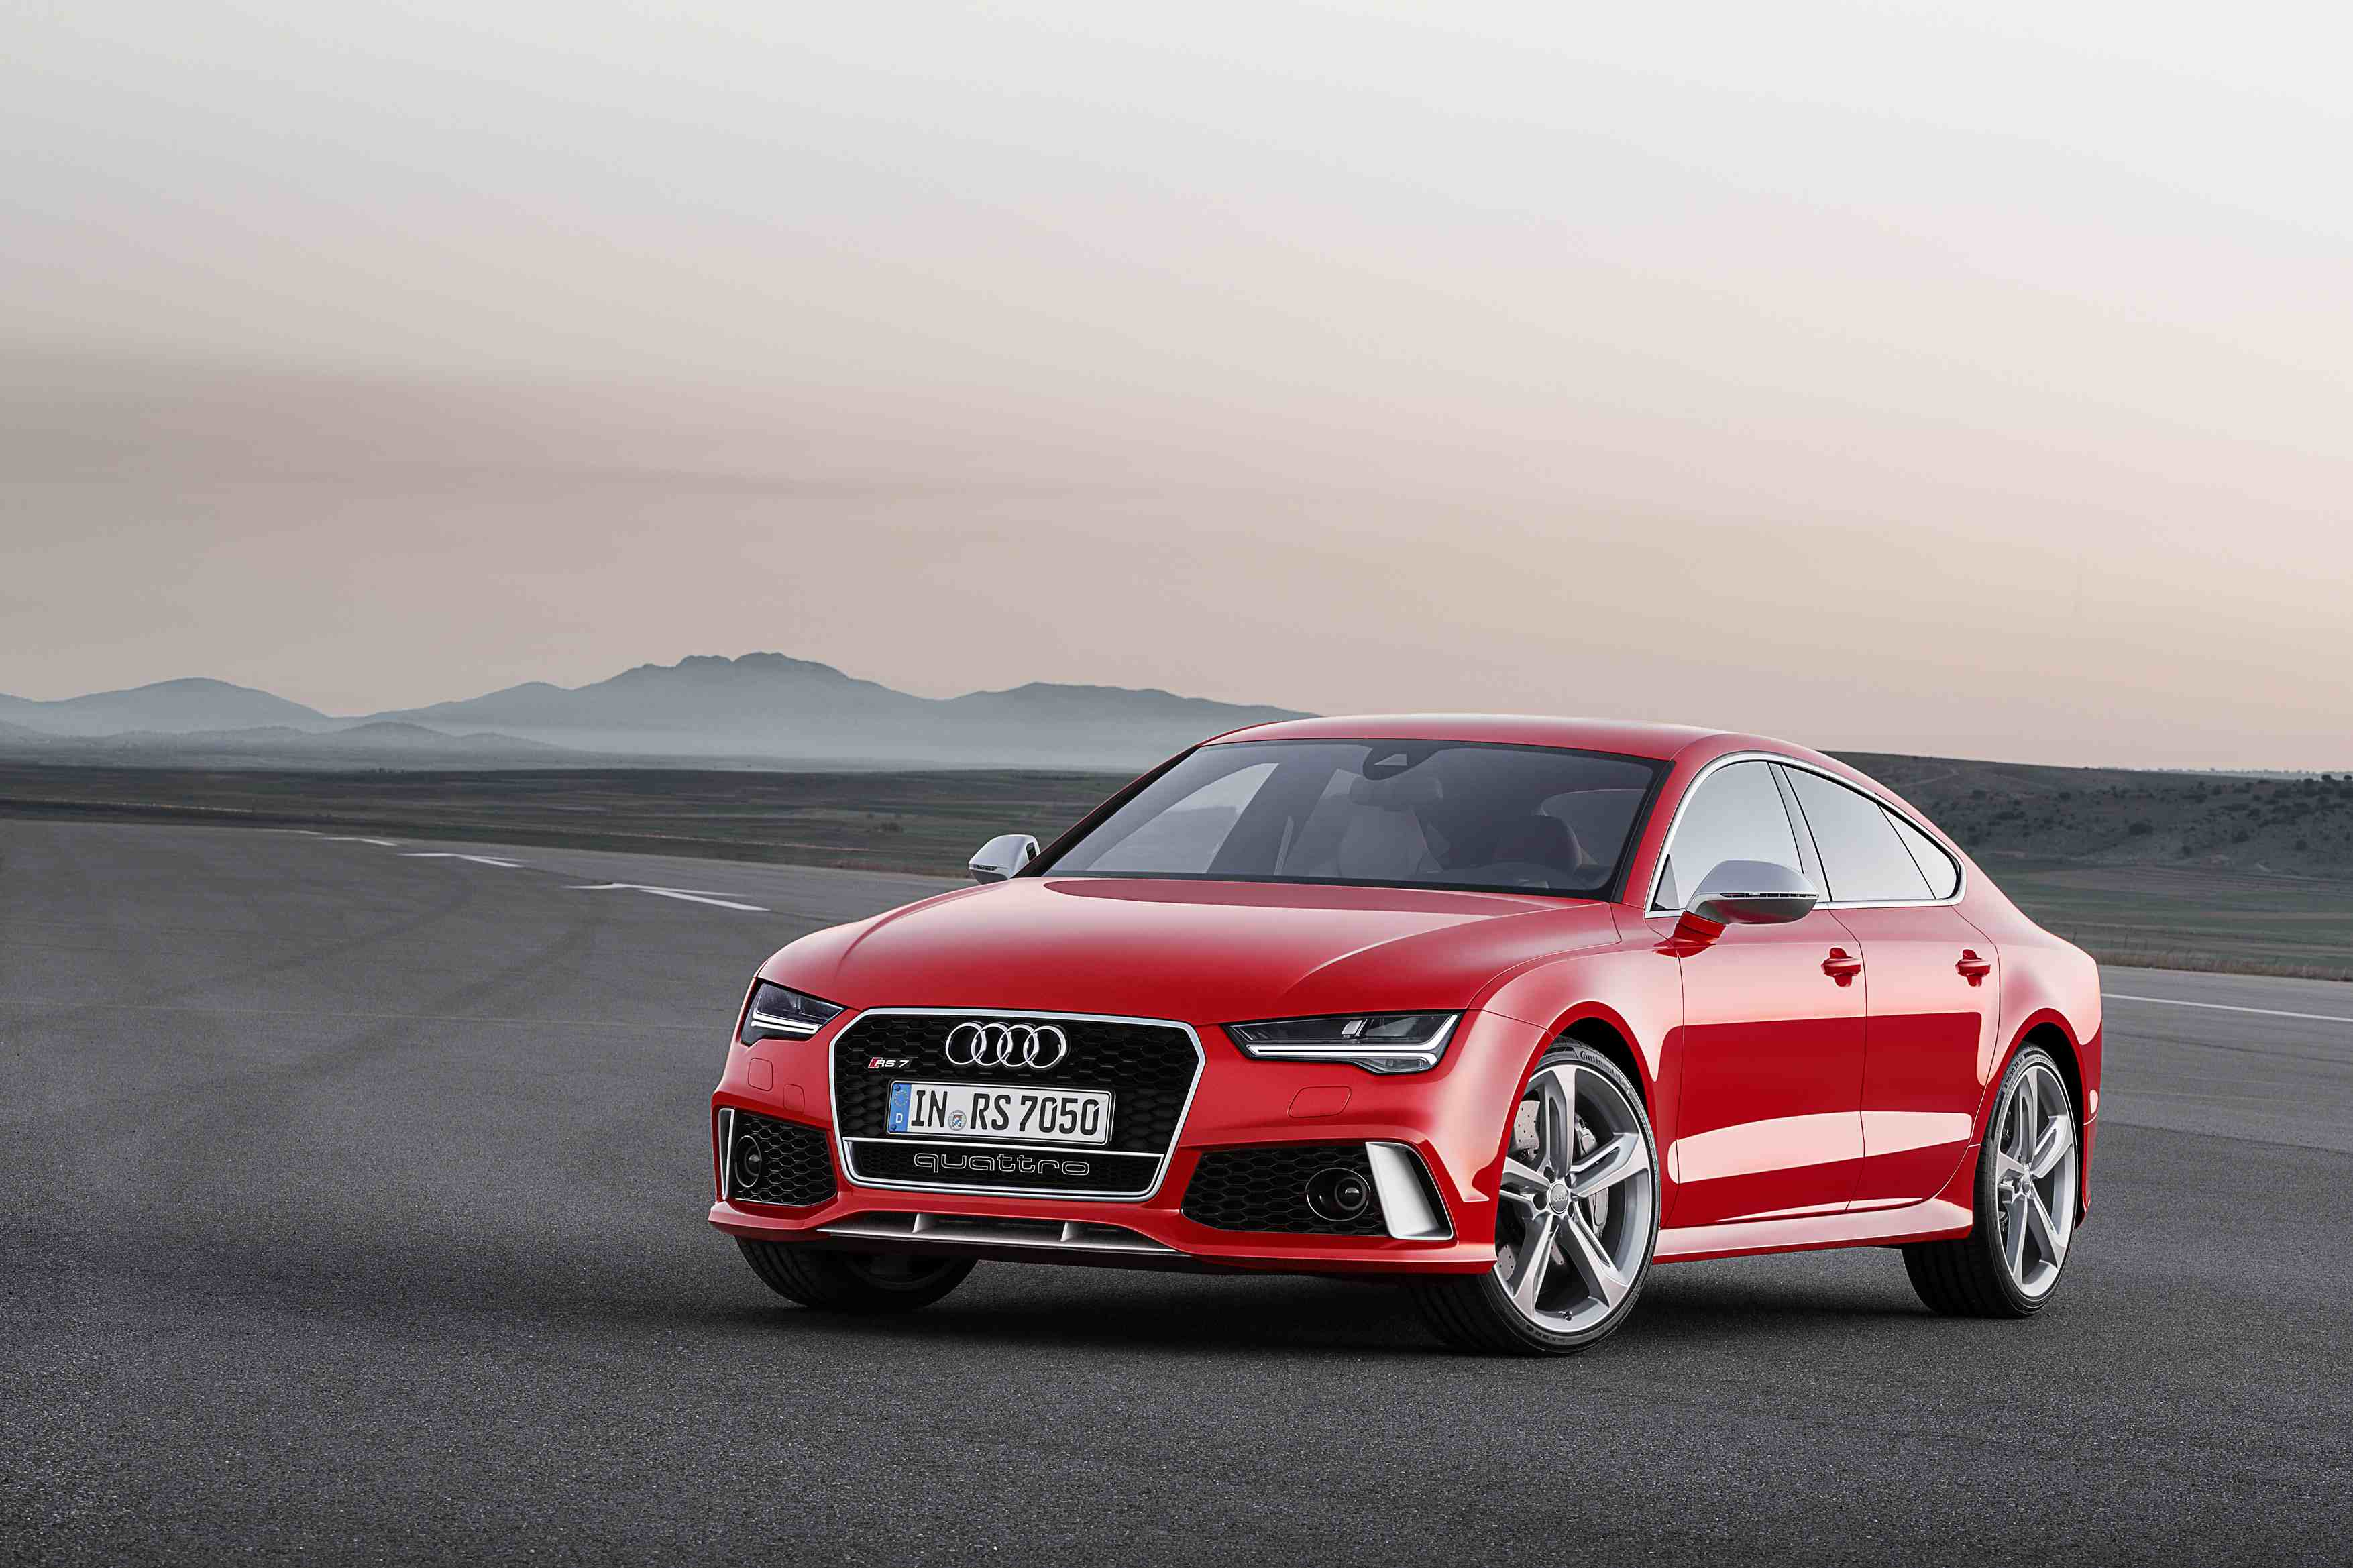 Mild Tweaks For Mad Audi RS7: Latest News